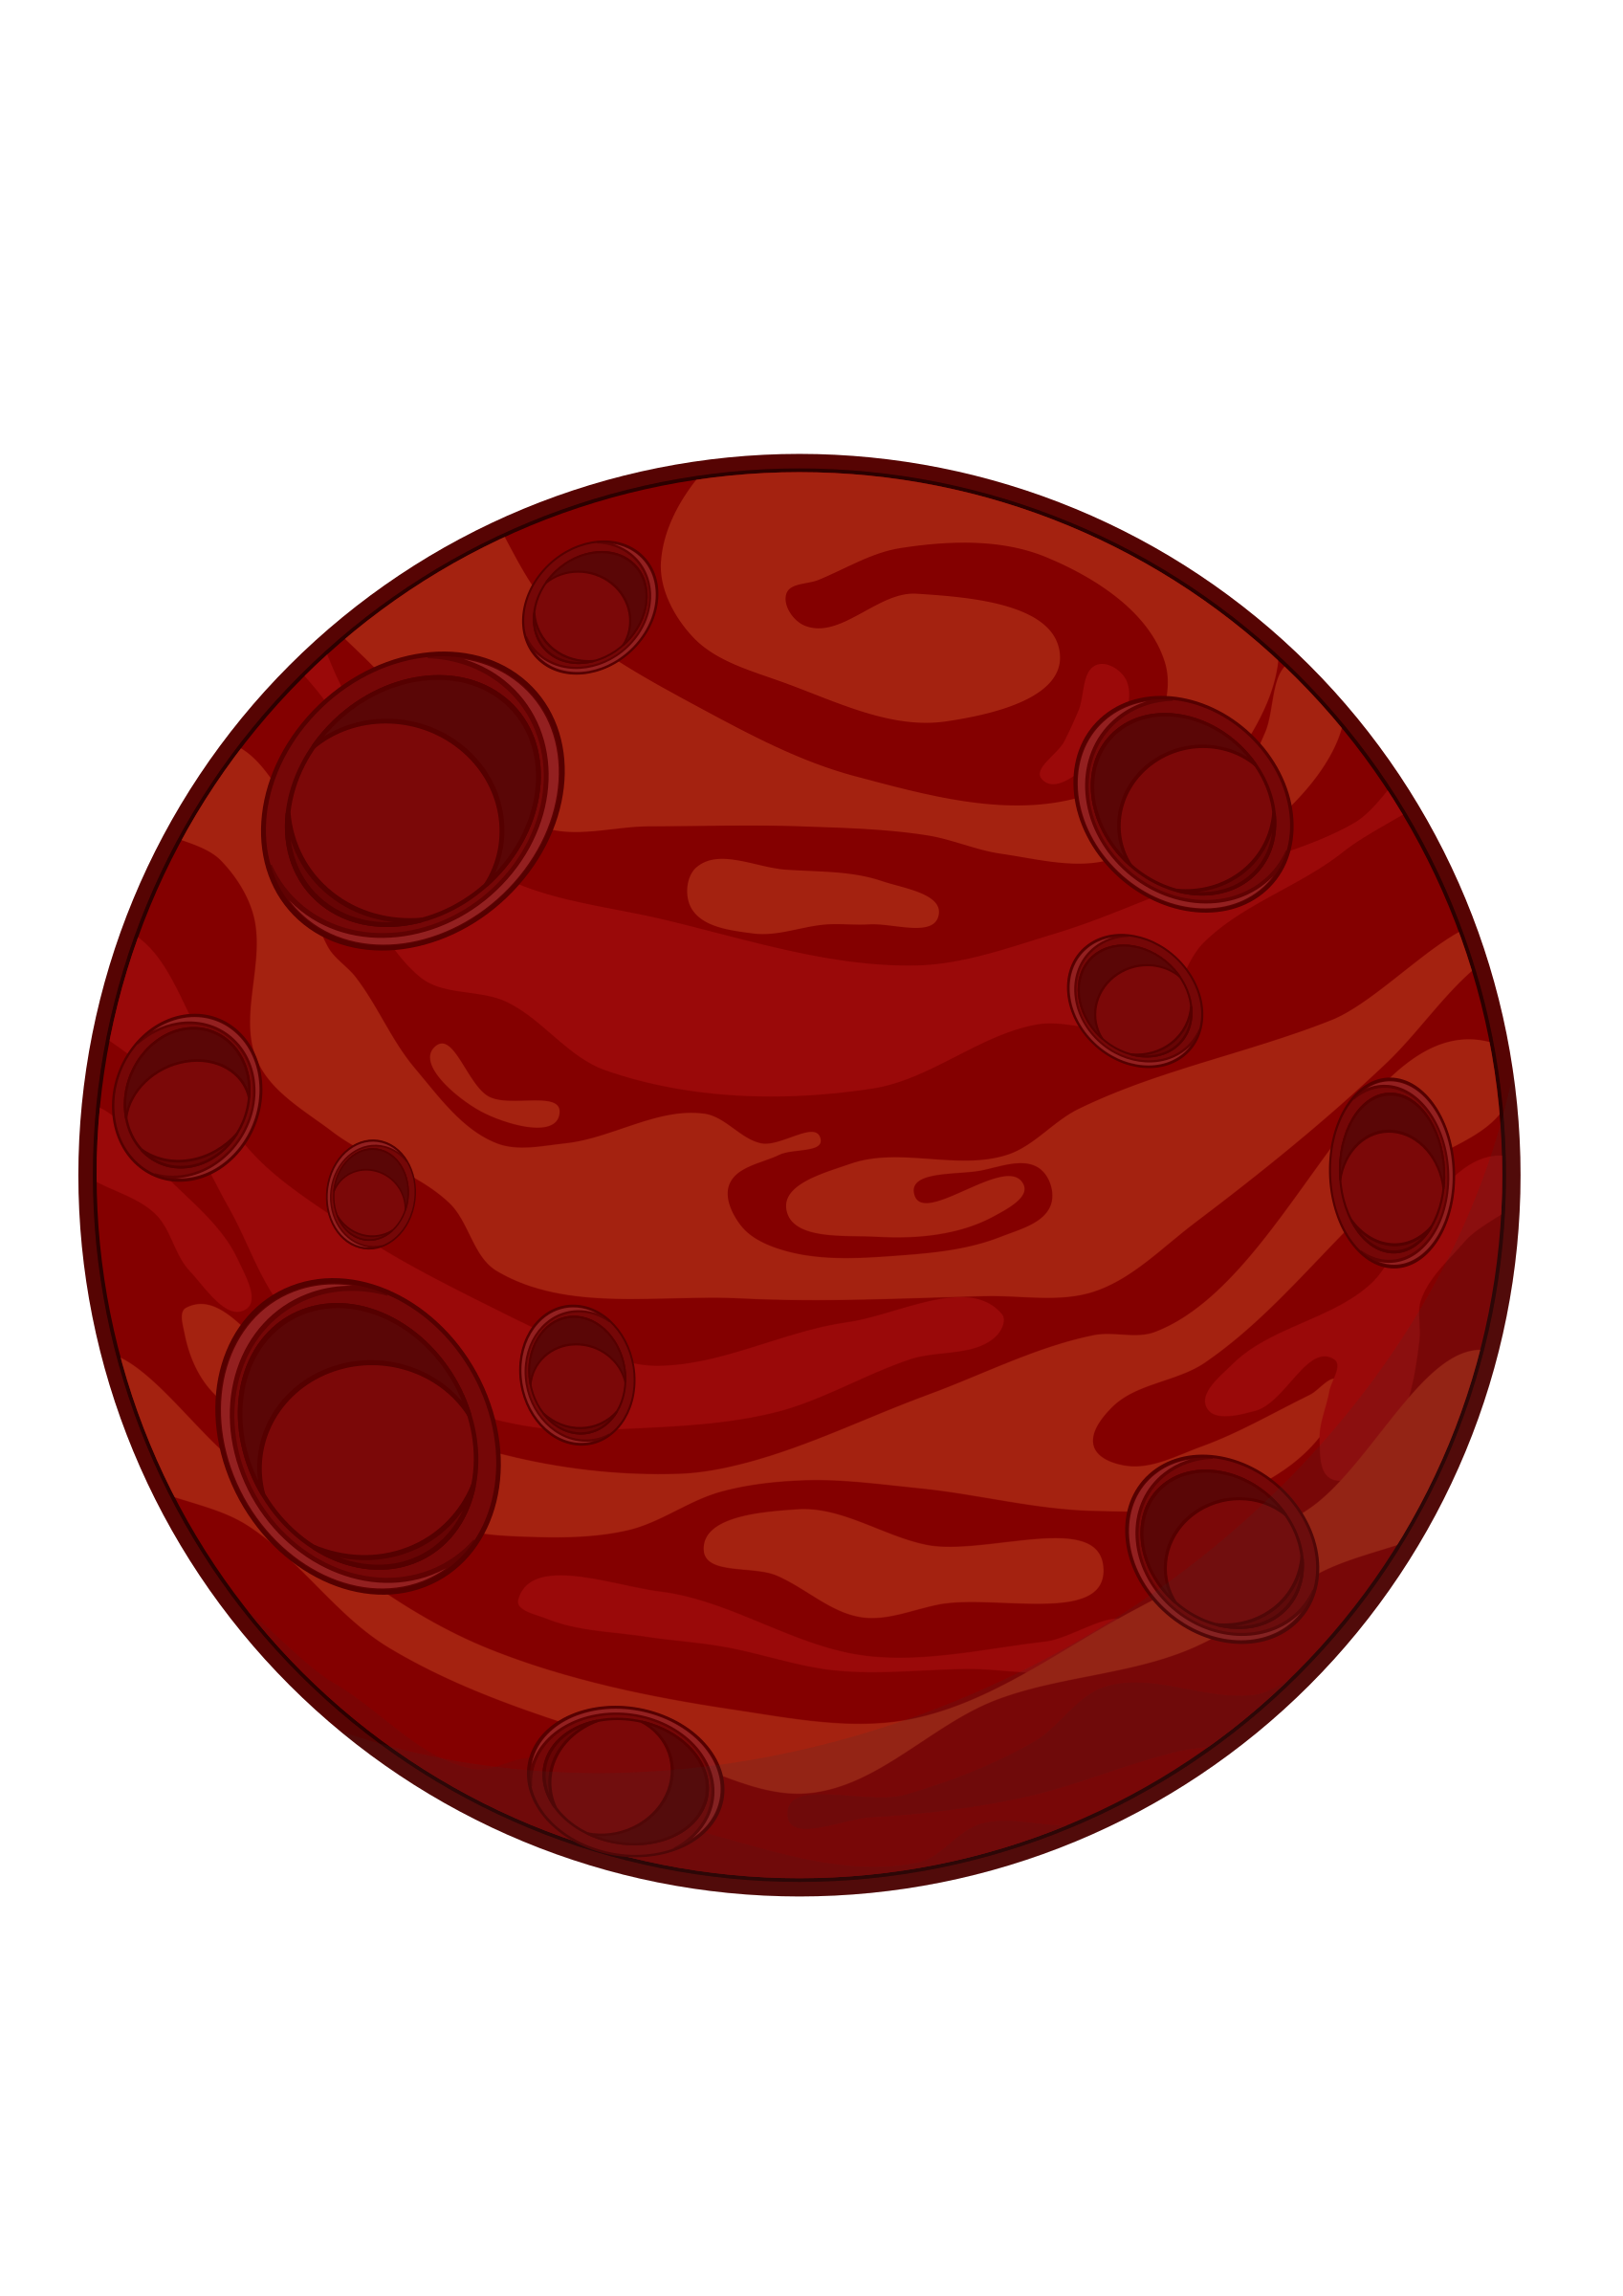 Images of clip art. Planets clipart planet mars